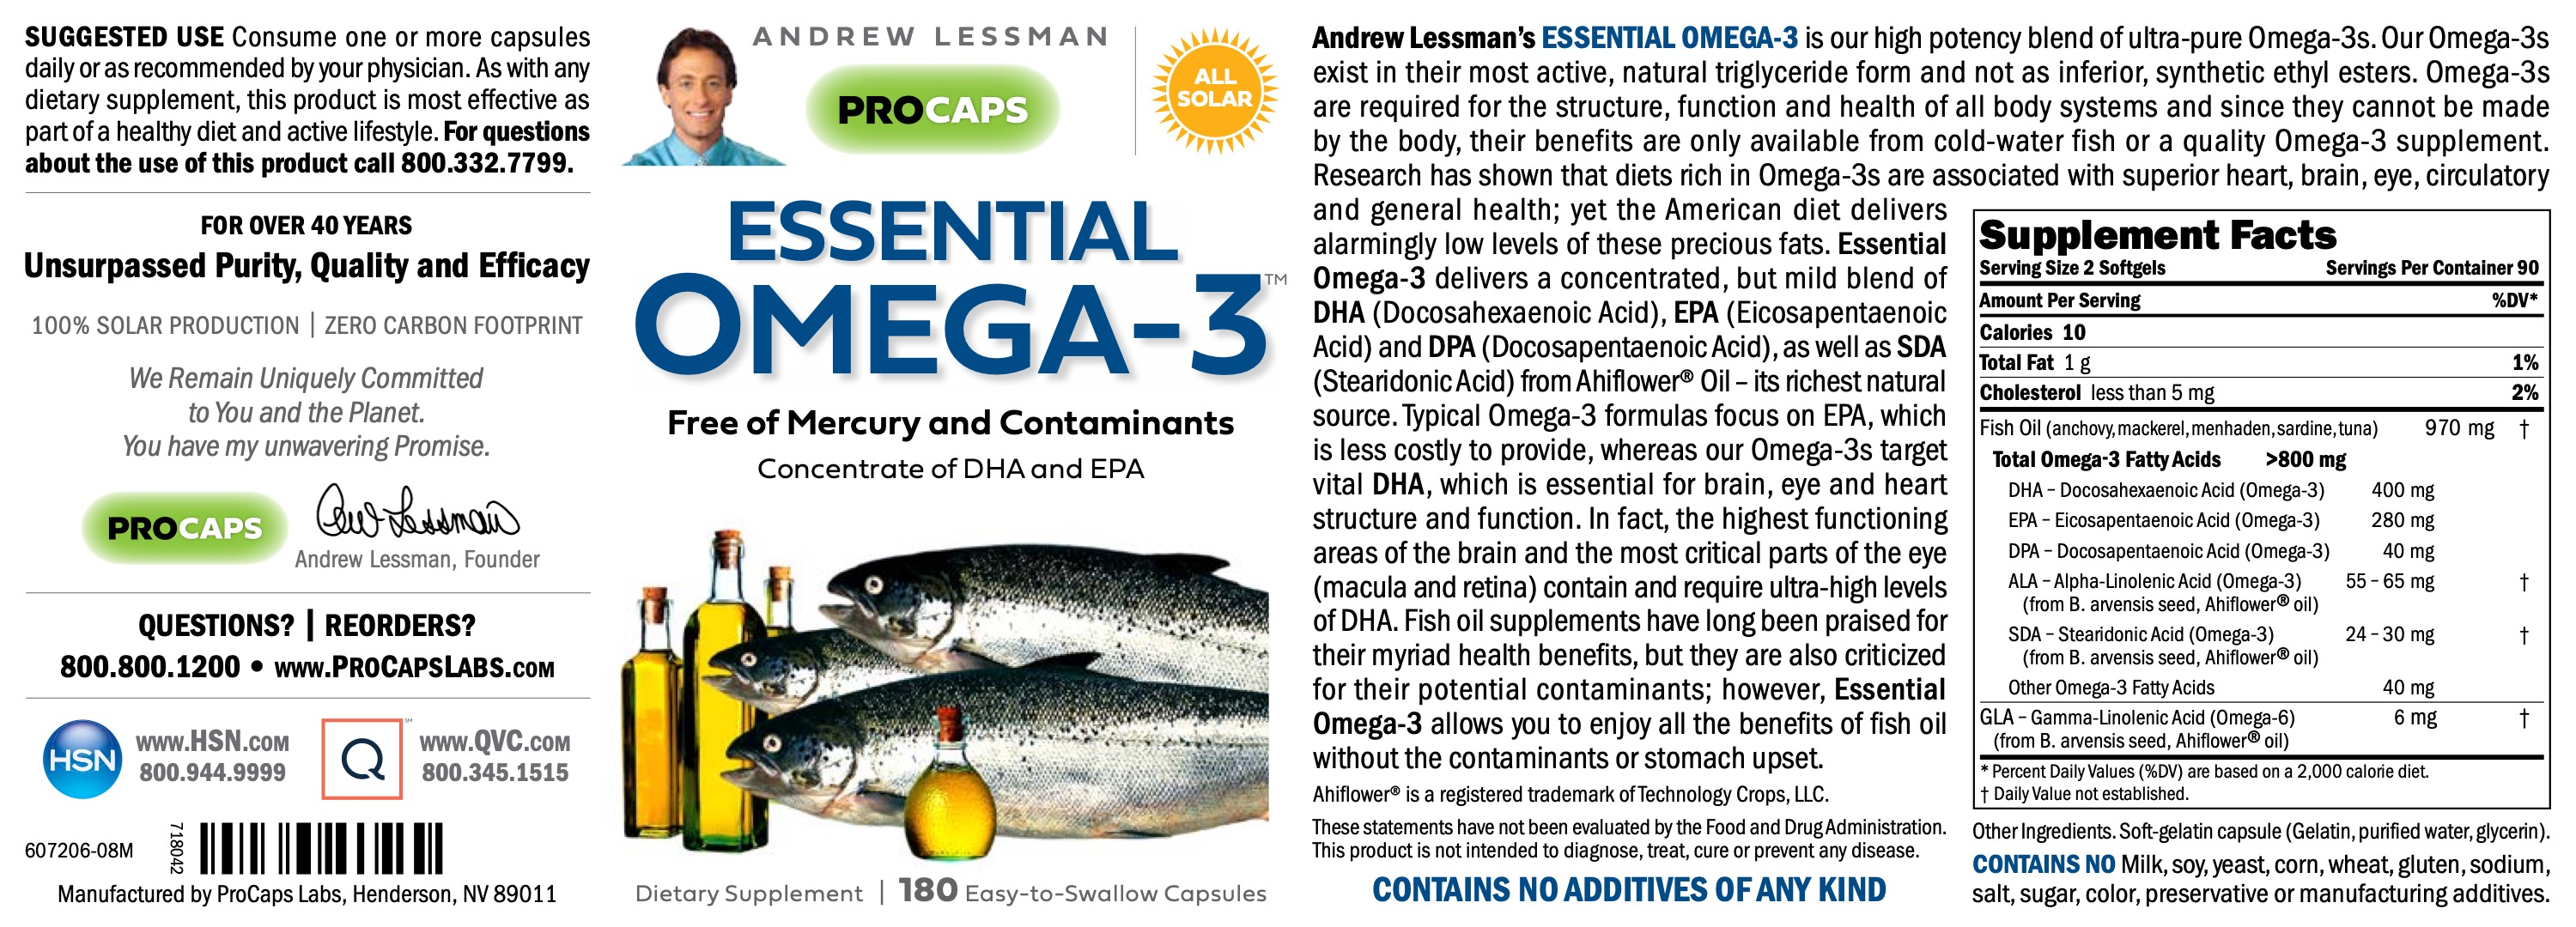 Essential-Omega-3-Unflavored-Softgels-Cardiovascular-Health